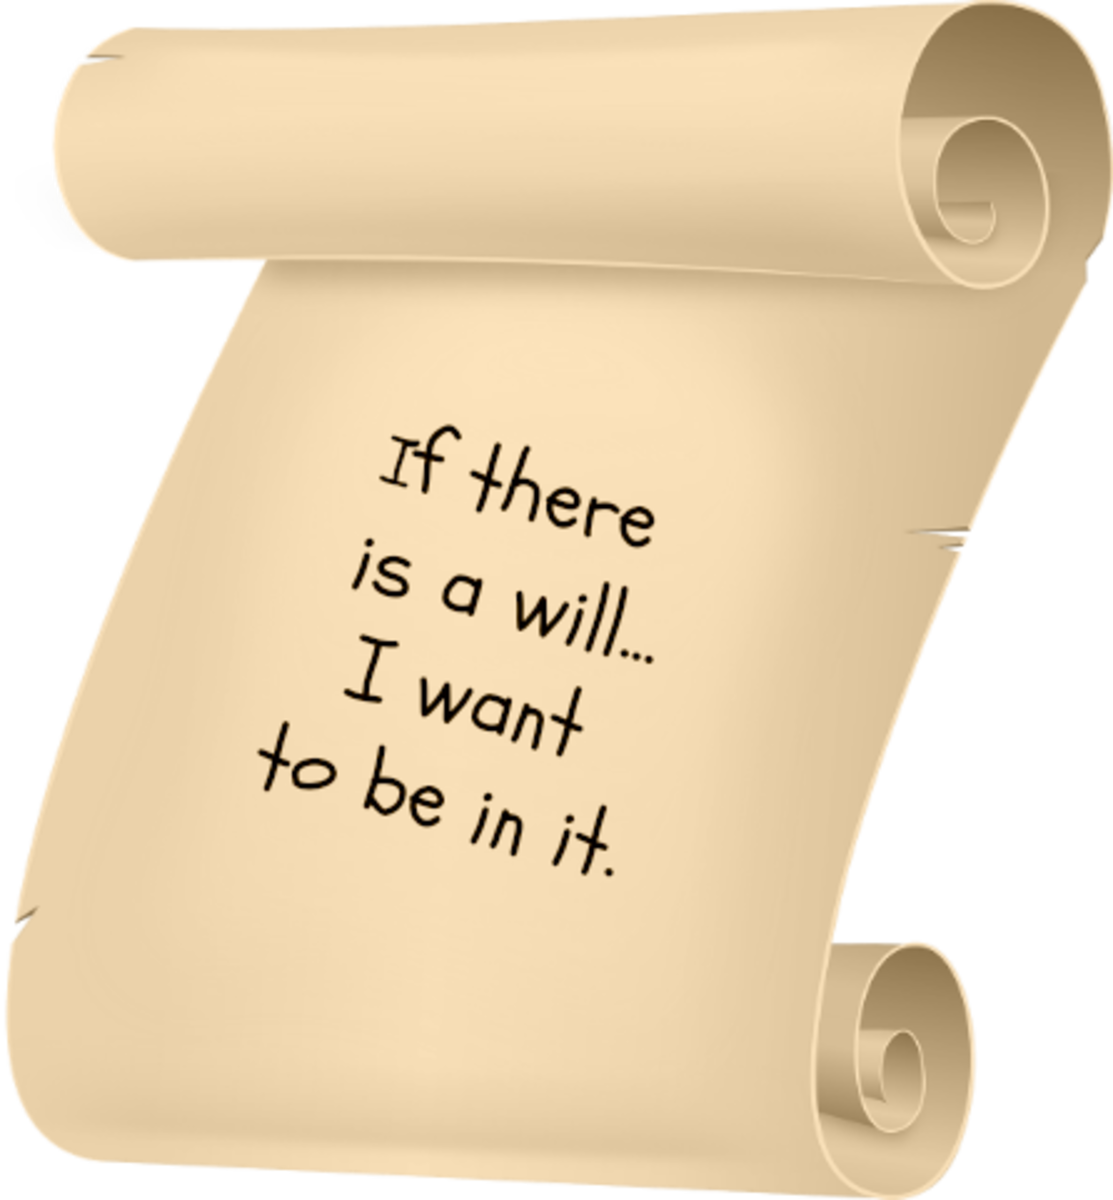 If there is a will, I want to be in it--an example of a paraprosdokian.